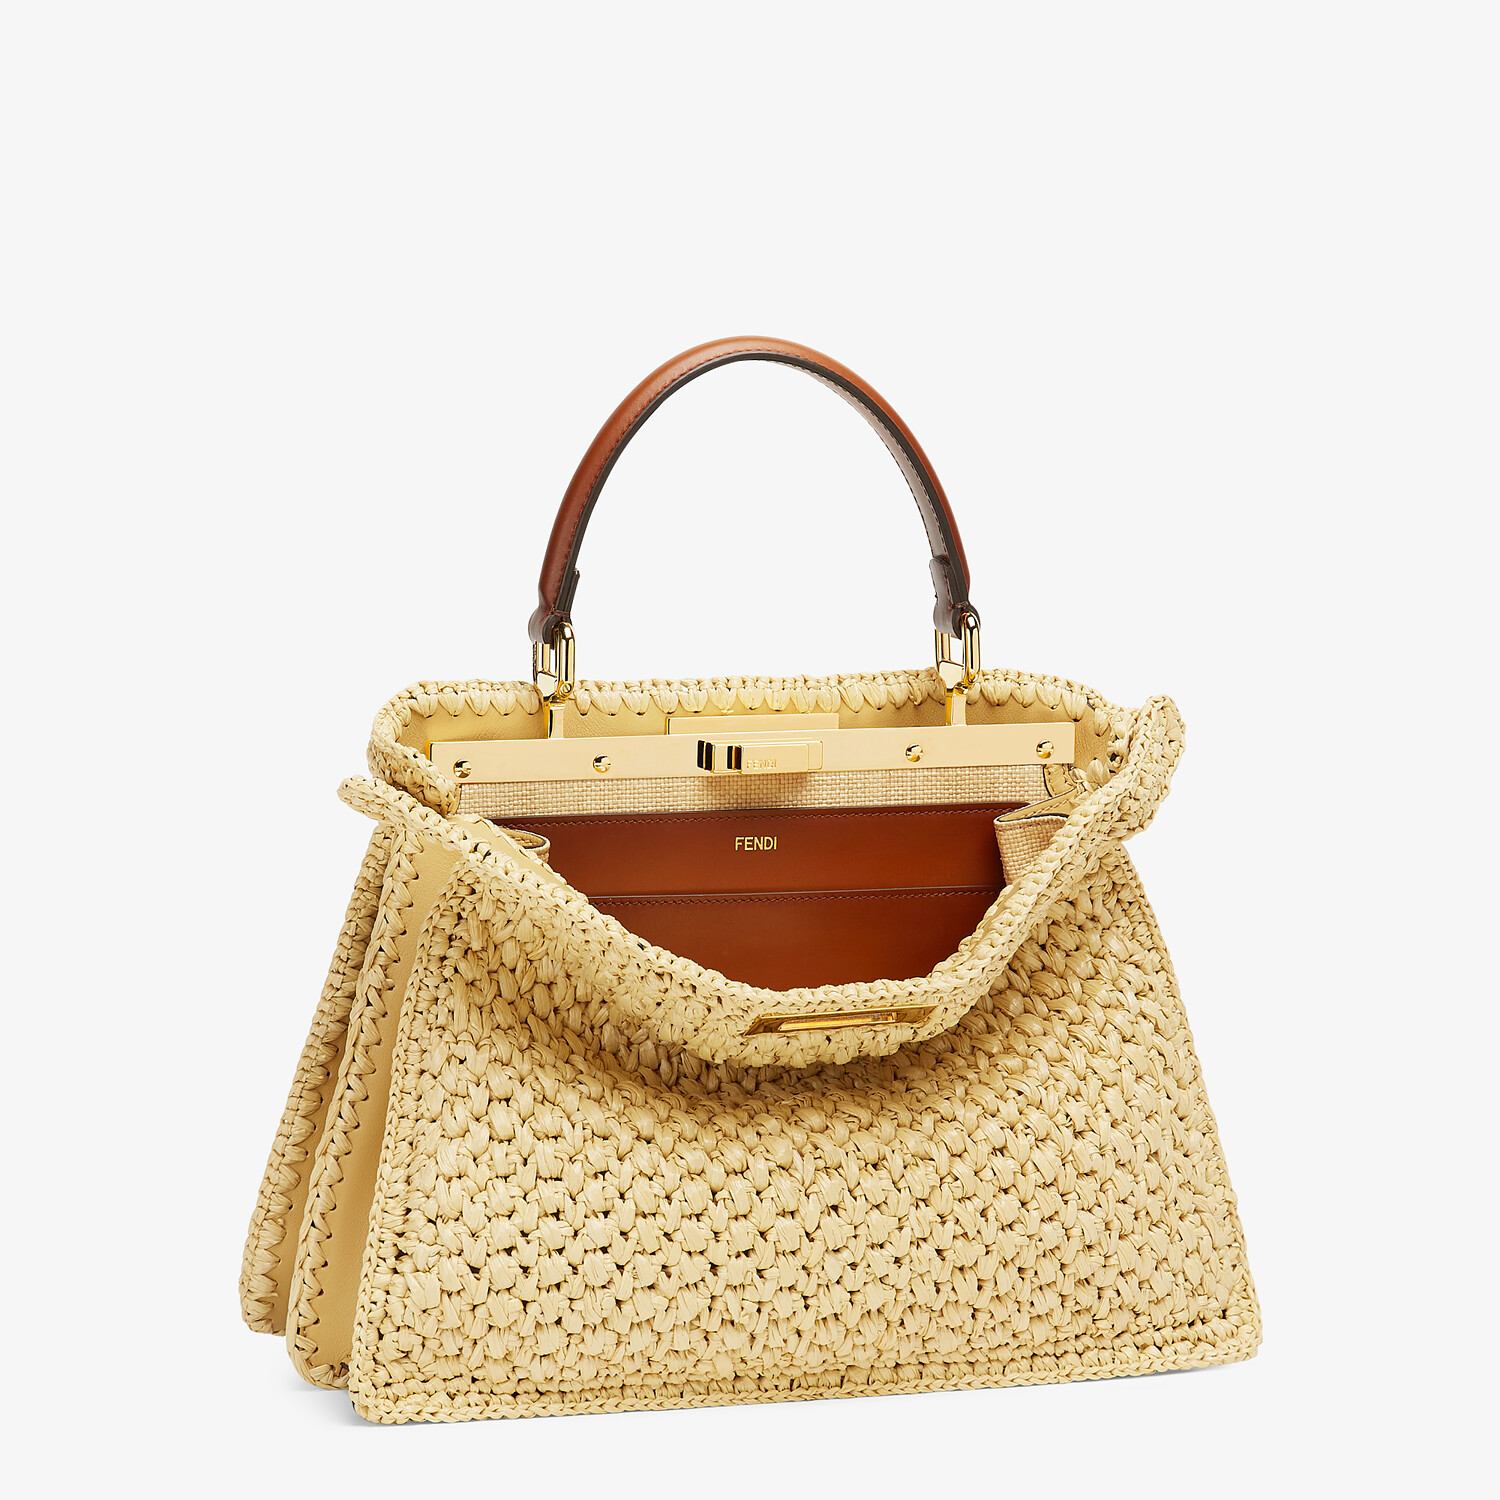 FENDI PEEKABOO ISEEU MEDIUM - Woven straw bag - view 5 detail